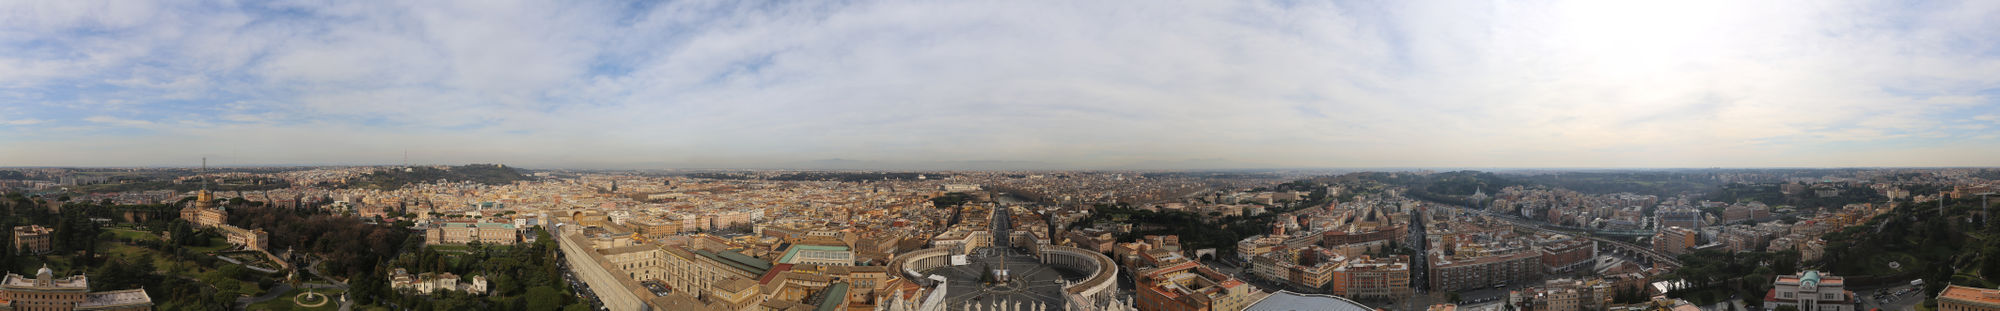 Panorama view from the dome of the St. Peter's Basilica